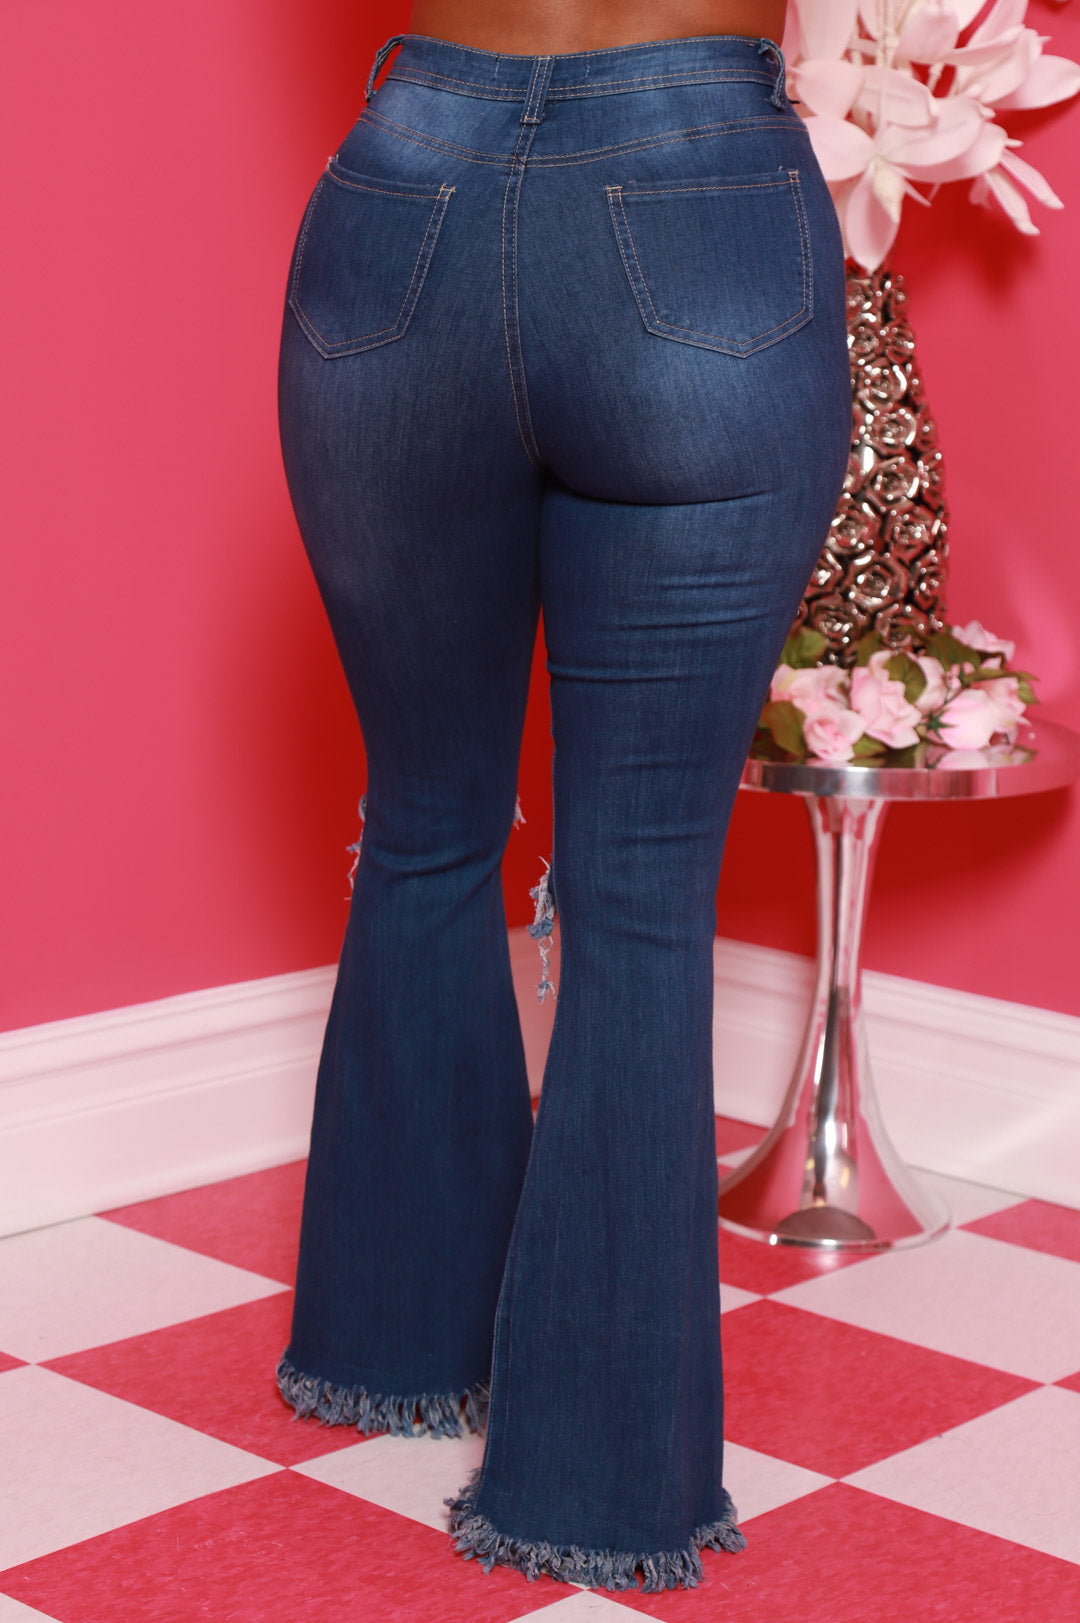 Frontline High Rise Frayed Bell Bottom Jeans - Mid Wash - Swank A Posh